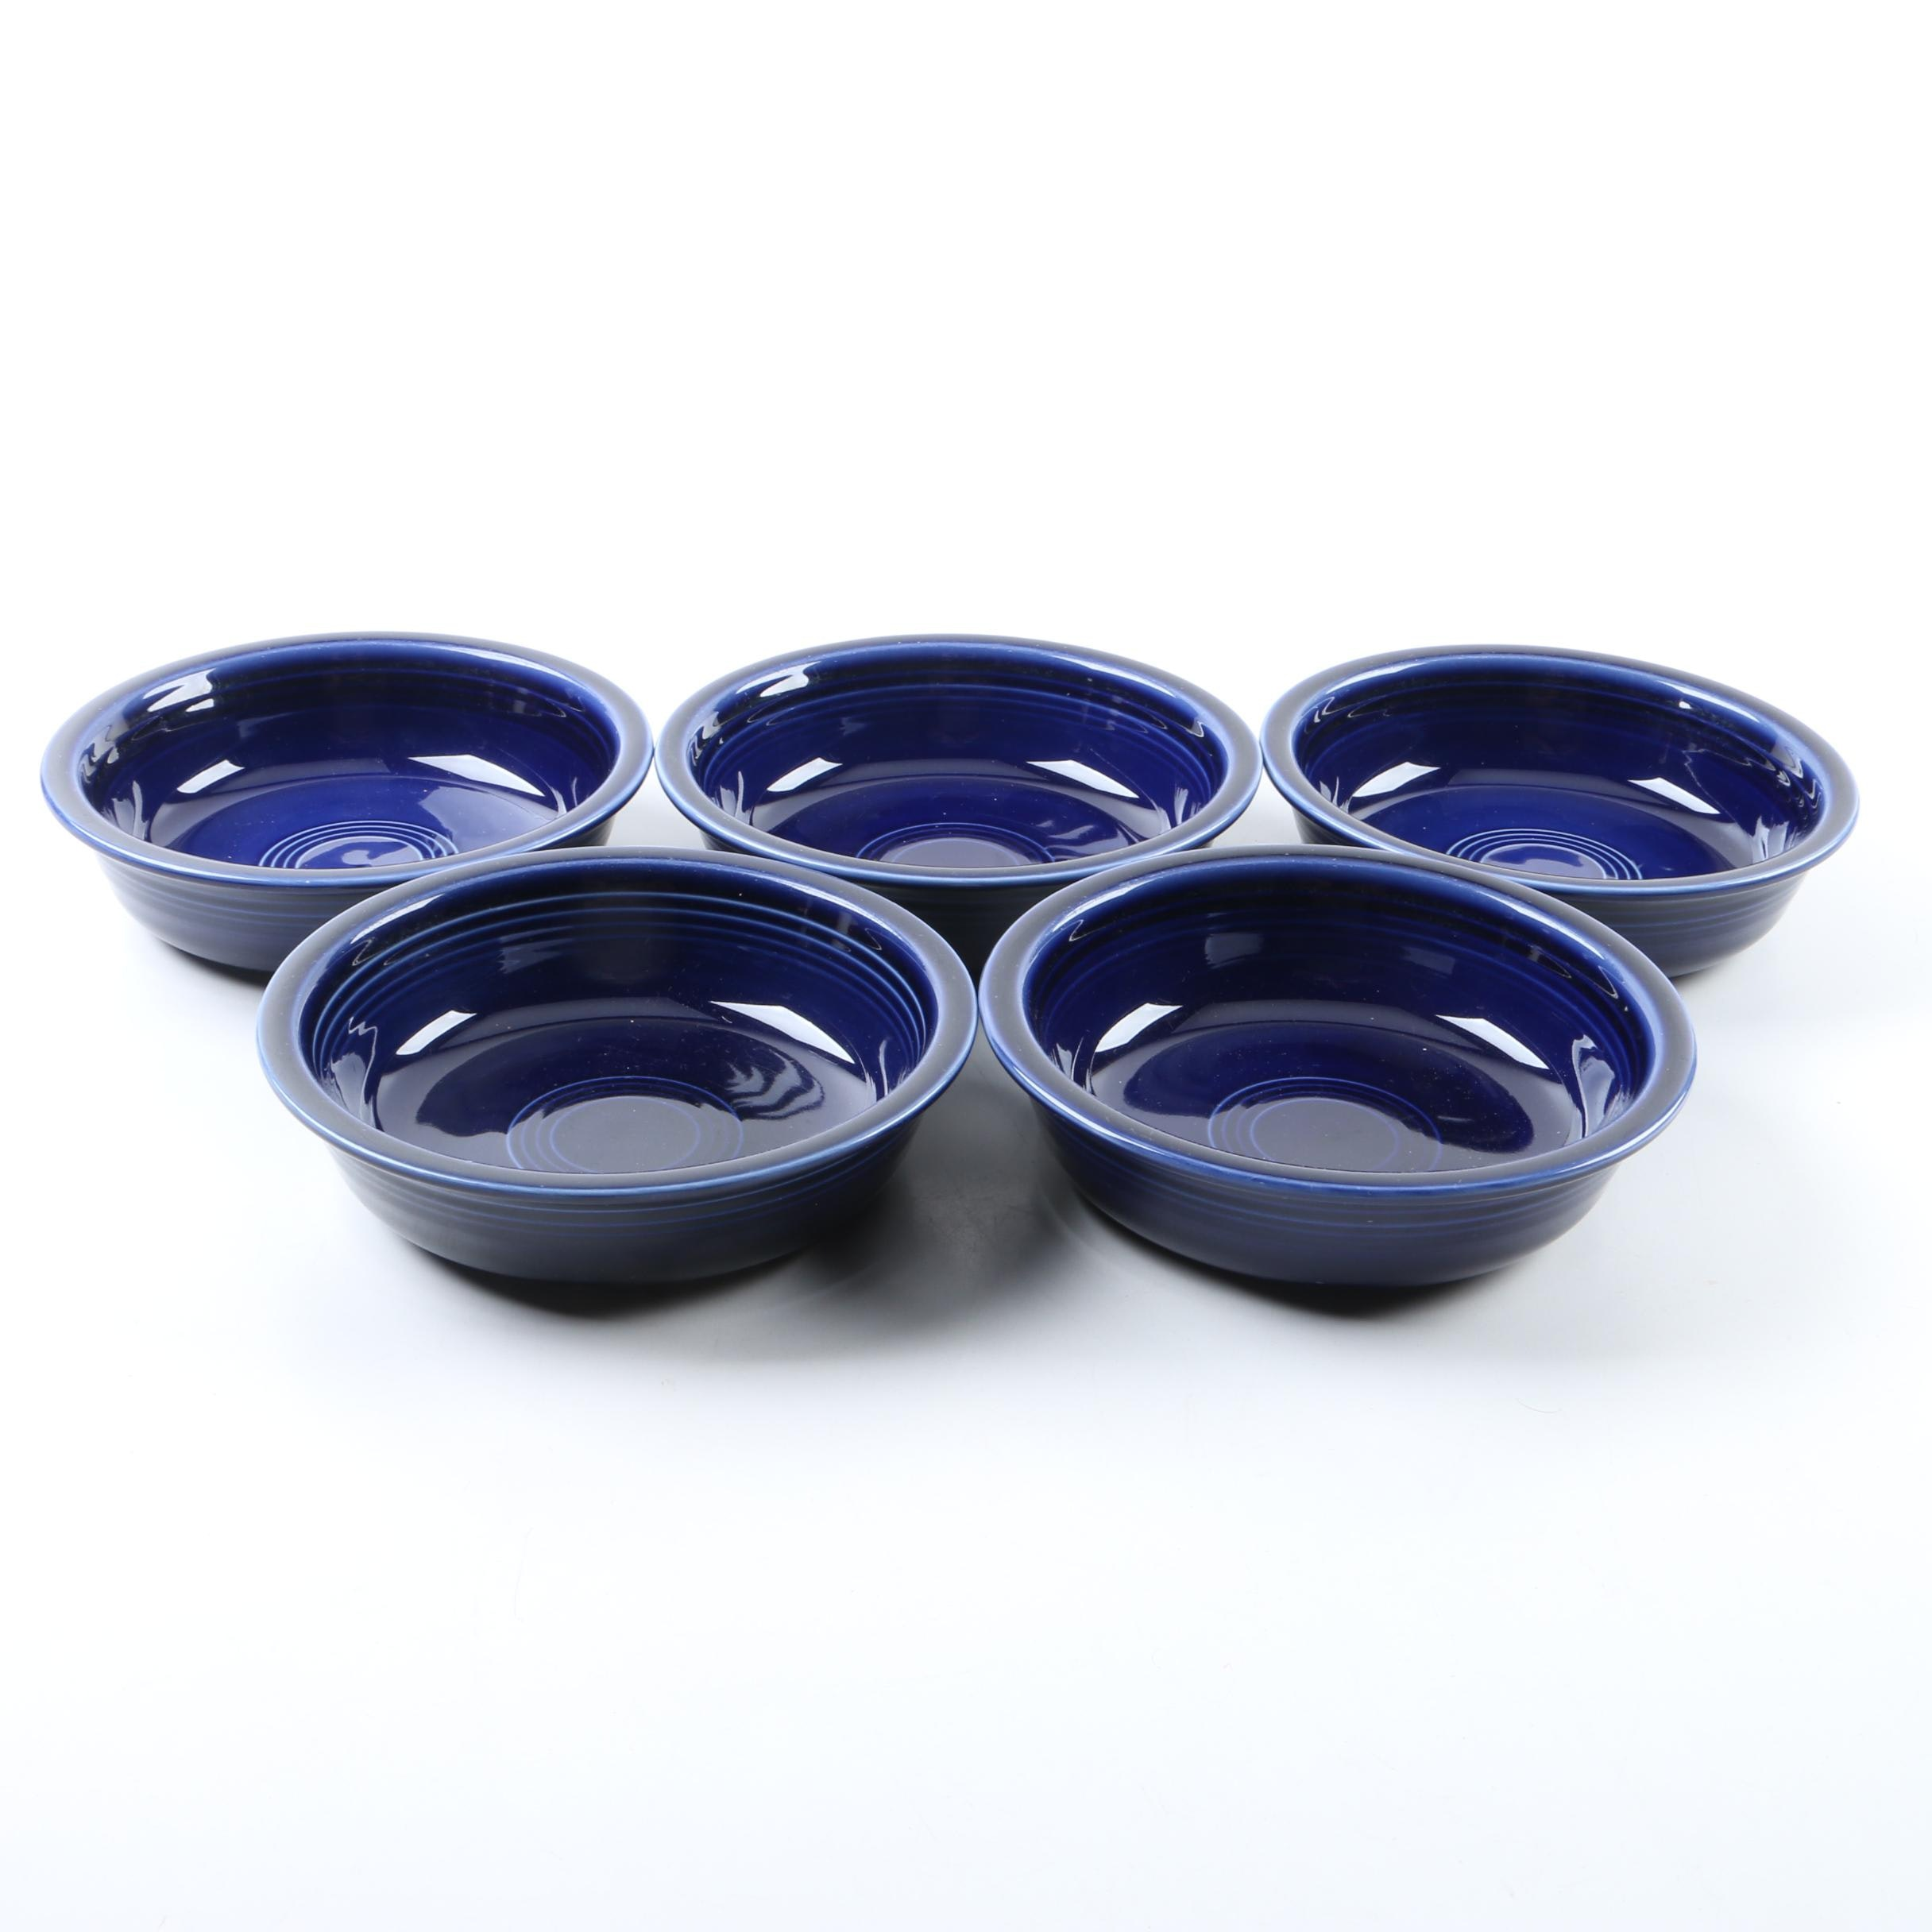 Homer Laughlin Co. Cobalt  Blue Fiesta Bowls